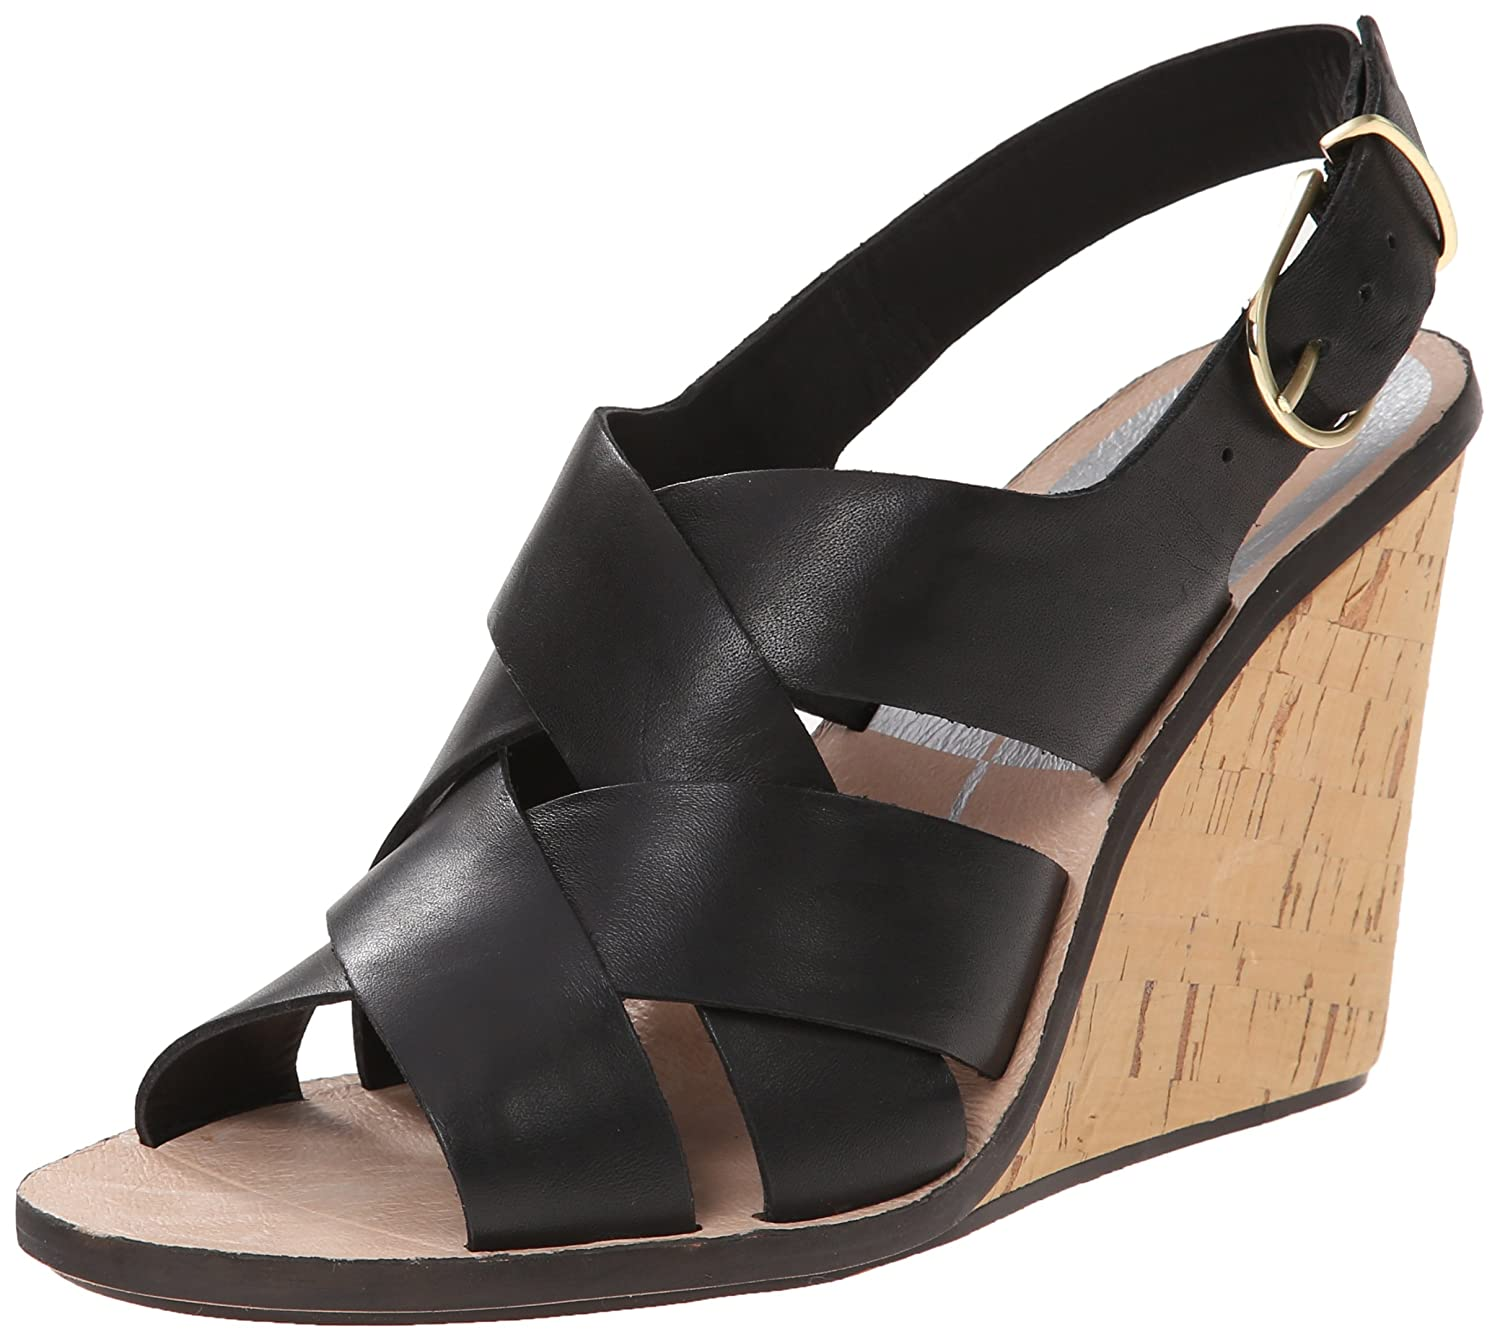 Dolce Vita Women's Remie Wedge Sandal B00Q6NE7T0 6 B(M) US|Black